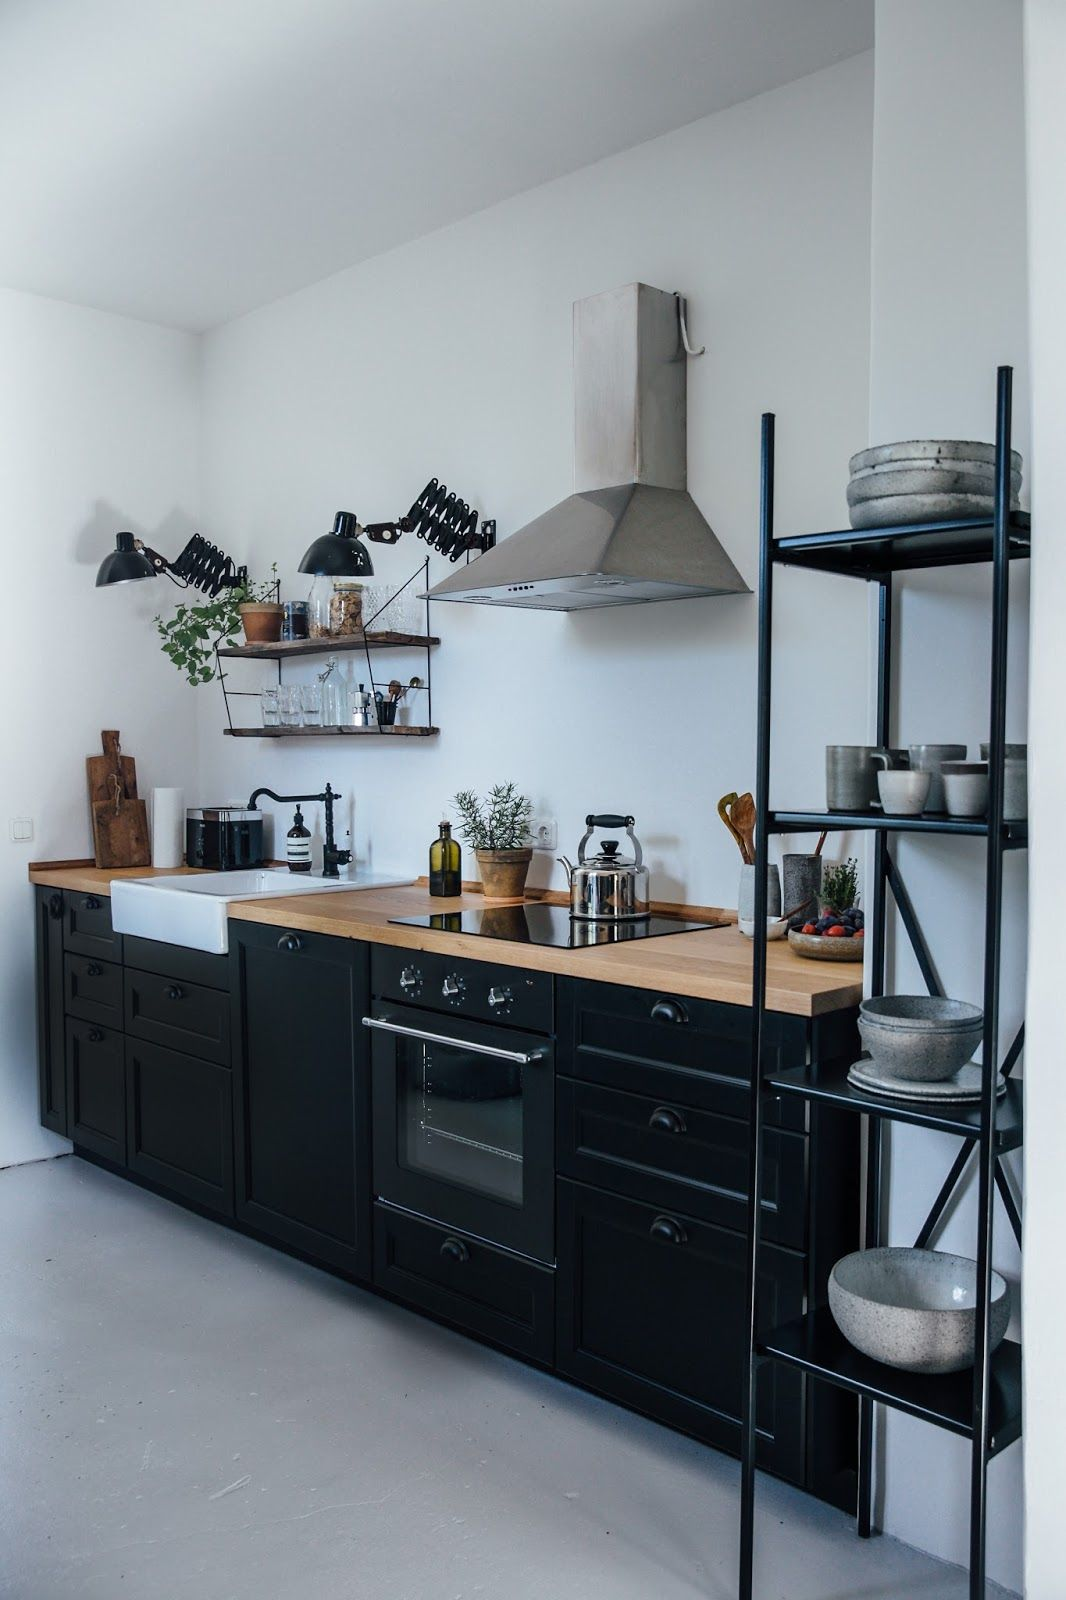 A Compact Ikea Country Kitchen Outside Berlin By The Creative Couple Behind  Our Food Stories |